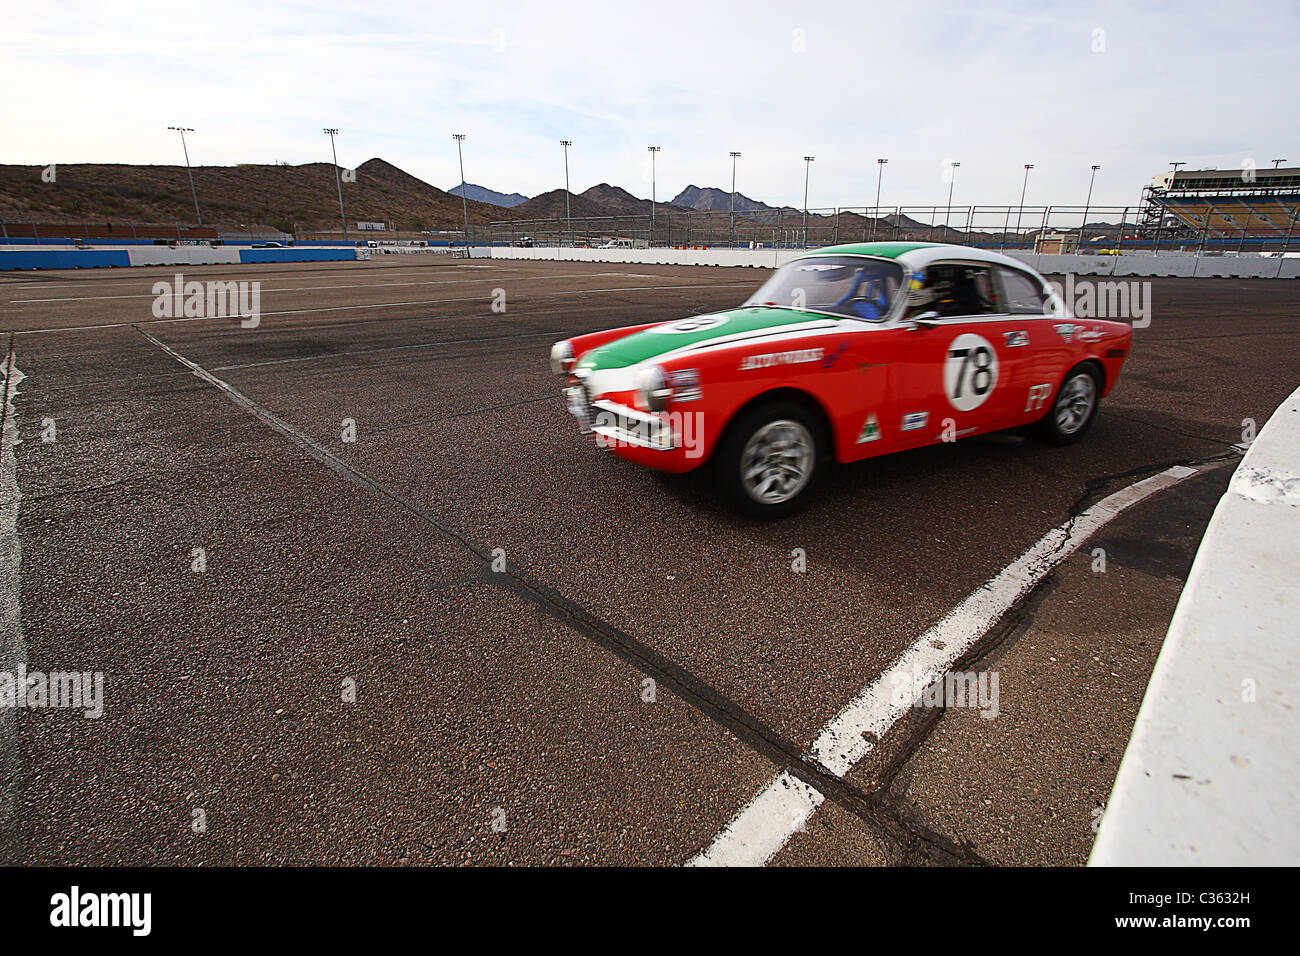 Red Race Car Immagini   Red Race Car Fotos Stock - Alamy 41d09047c36